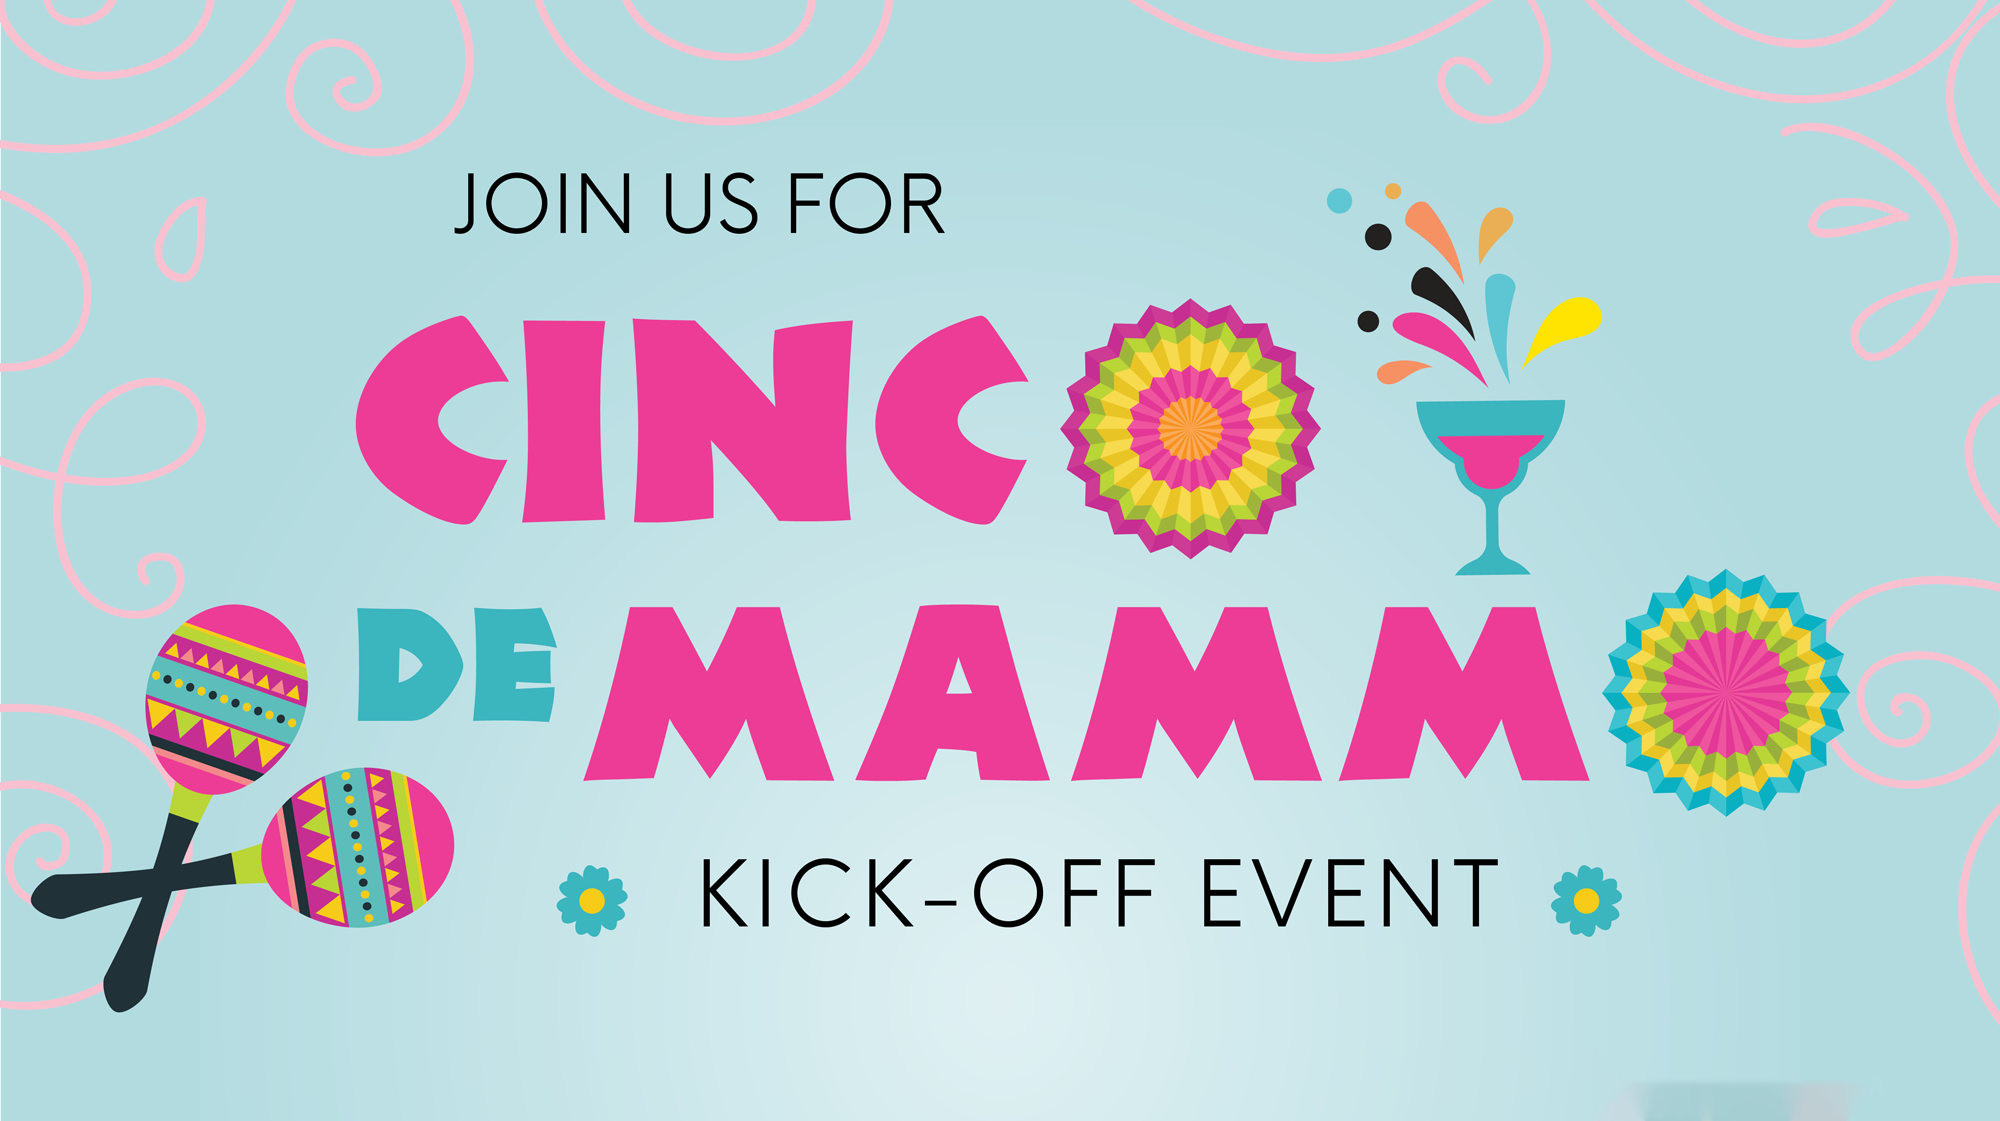 Join us for Cinco de Mammo Kick-Off Event - Monday, April 29, from 6 to 8 p.m. - Rustico Restaurant | 506 West Chestnut | Denison, Tickets $10, online or at the door. All proceeds donated to Women Rock, Inc.